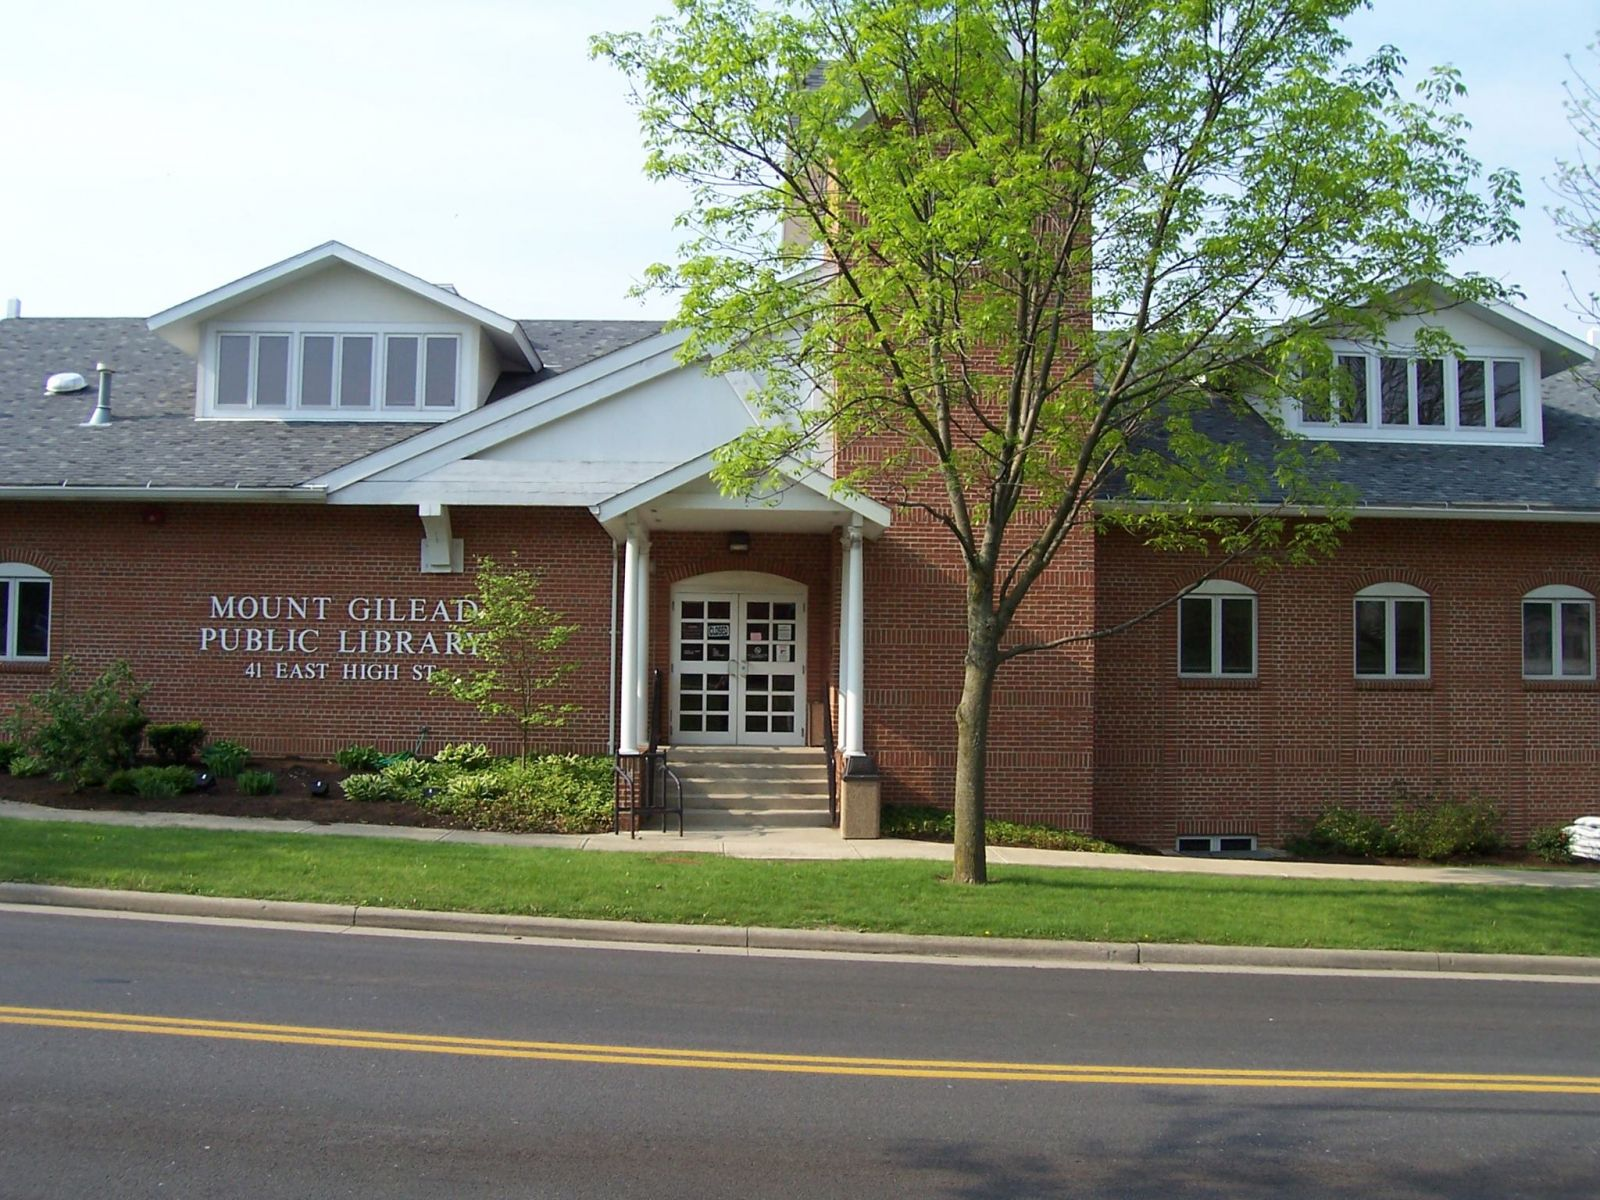 Picture of the Mount Gilead Public Library - Main Street View